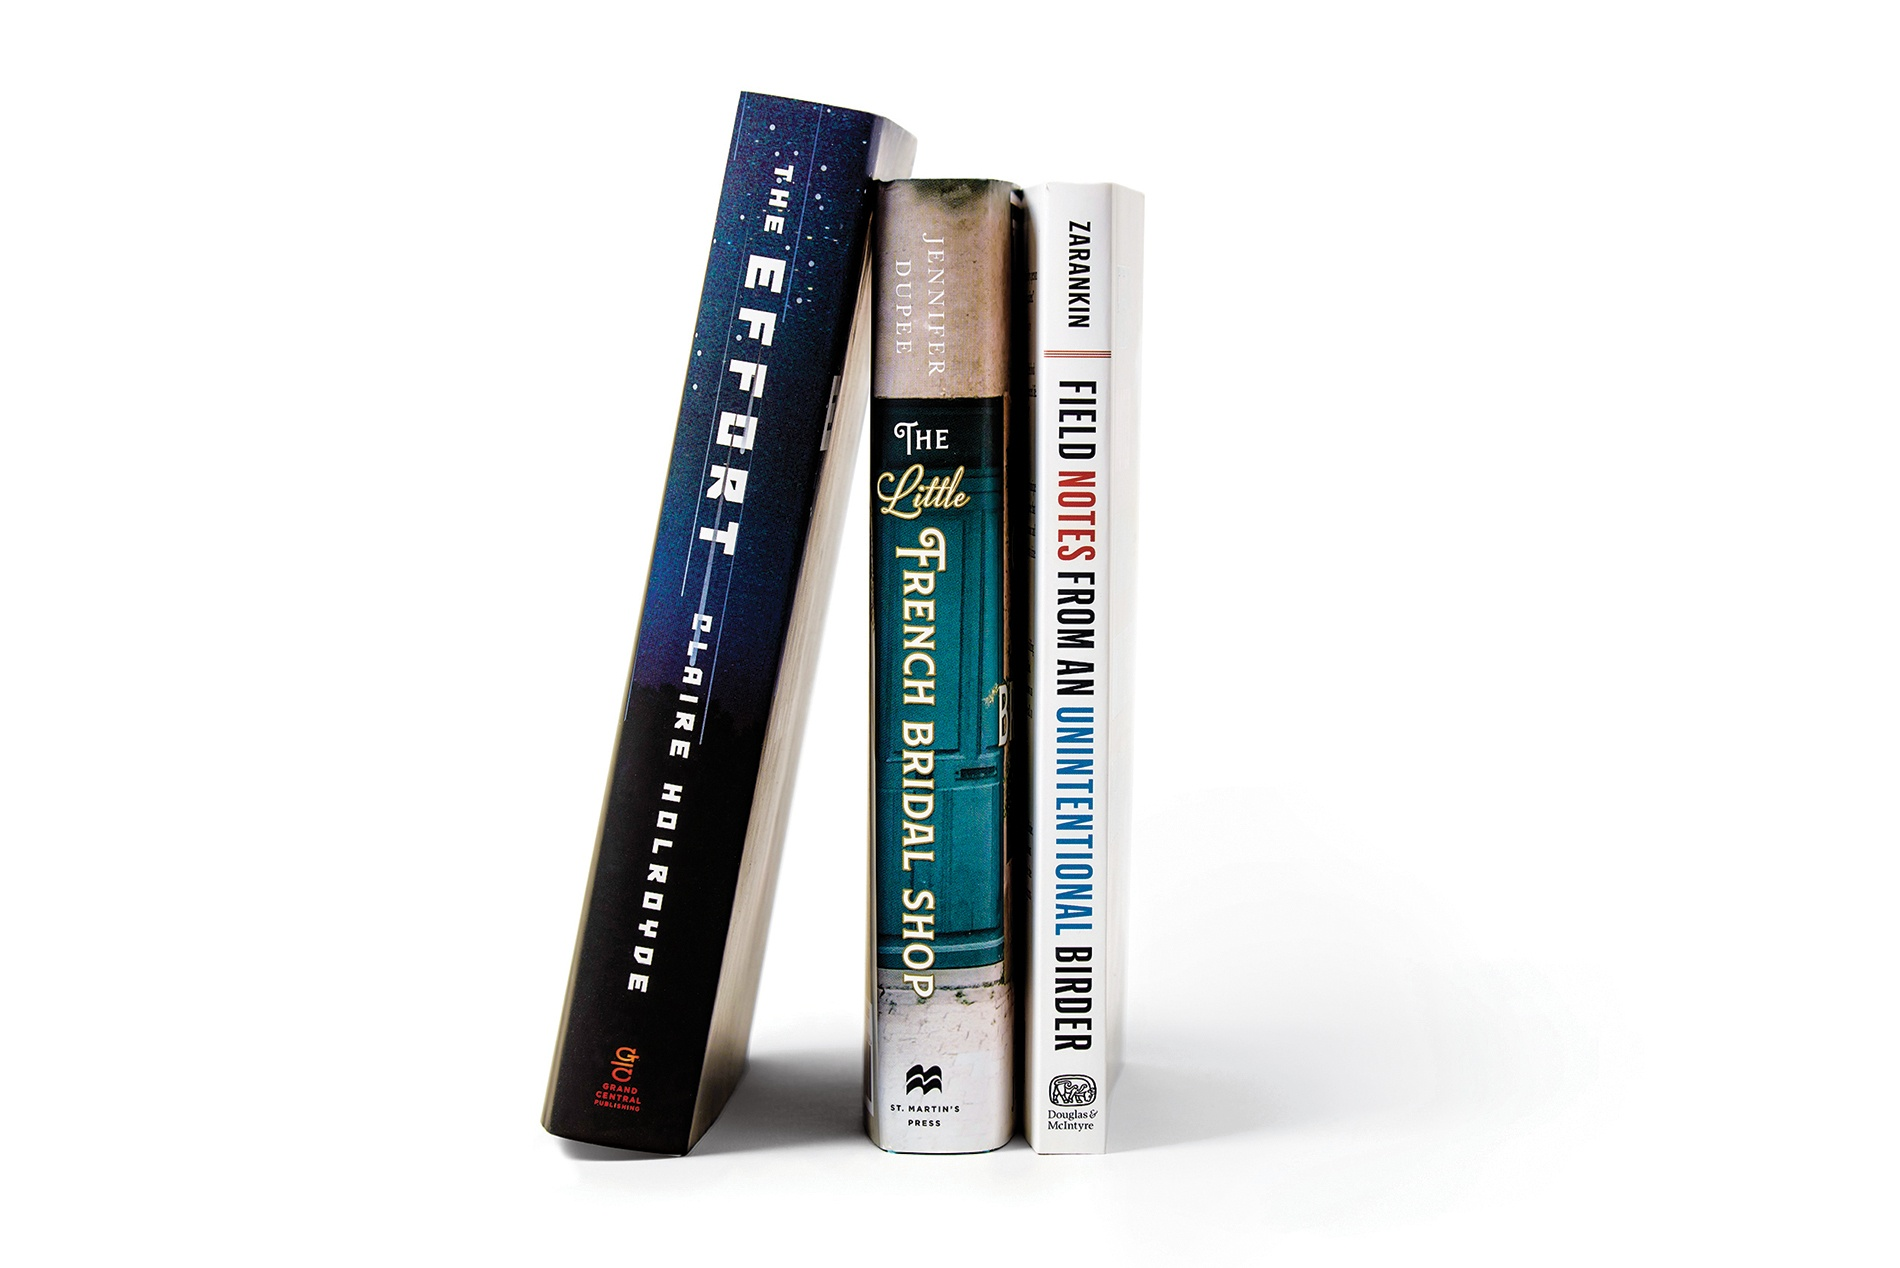 Image of books by Julia Zarankin '97, Jennifer Dupee '96, and Claire Holroyde '01